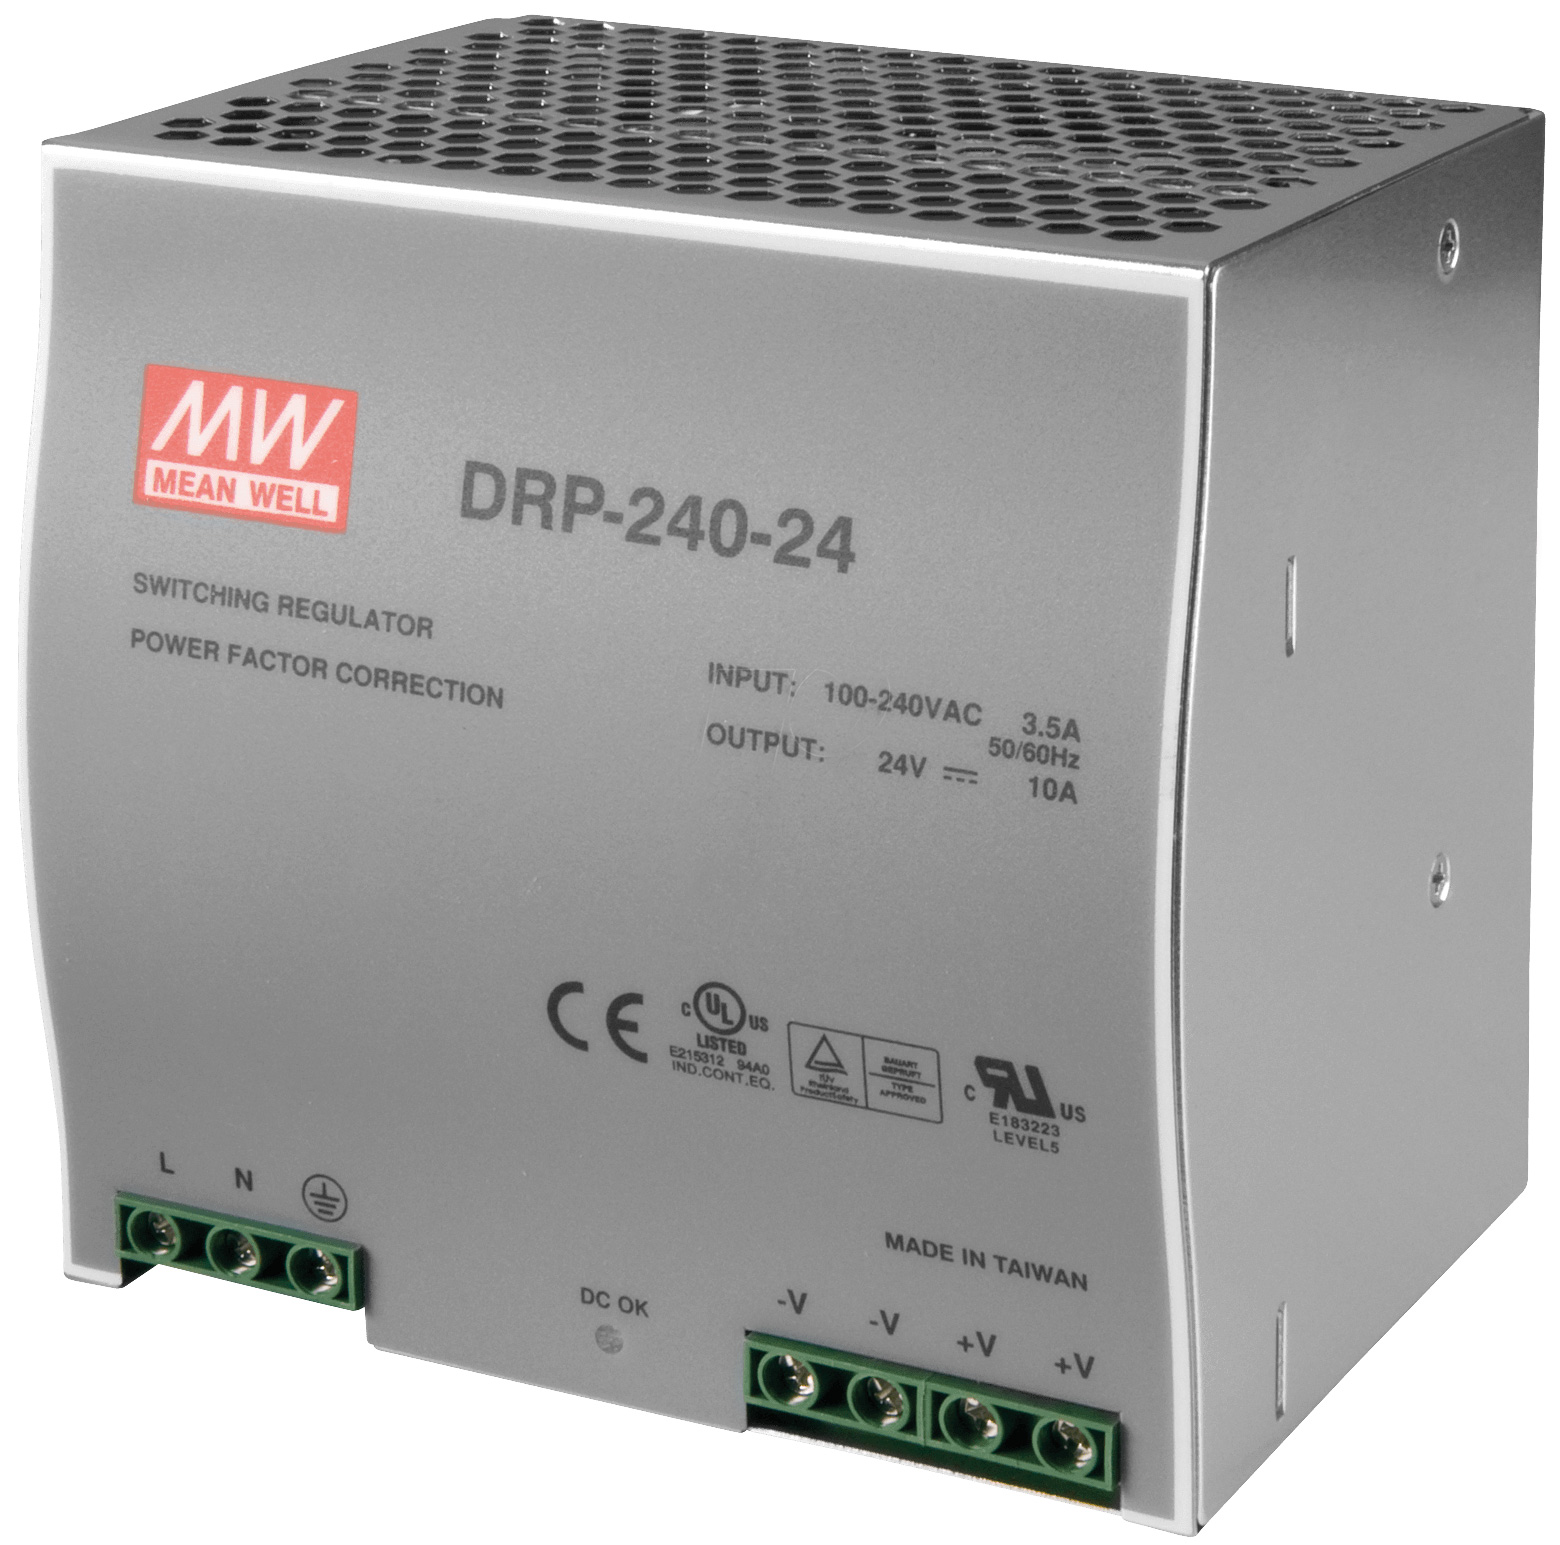 DIN rail power supply 240V ac - 24V dc 240 W